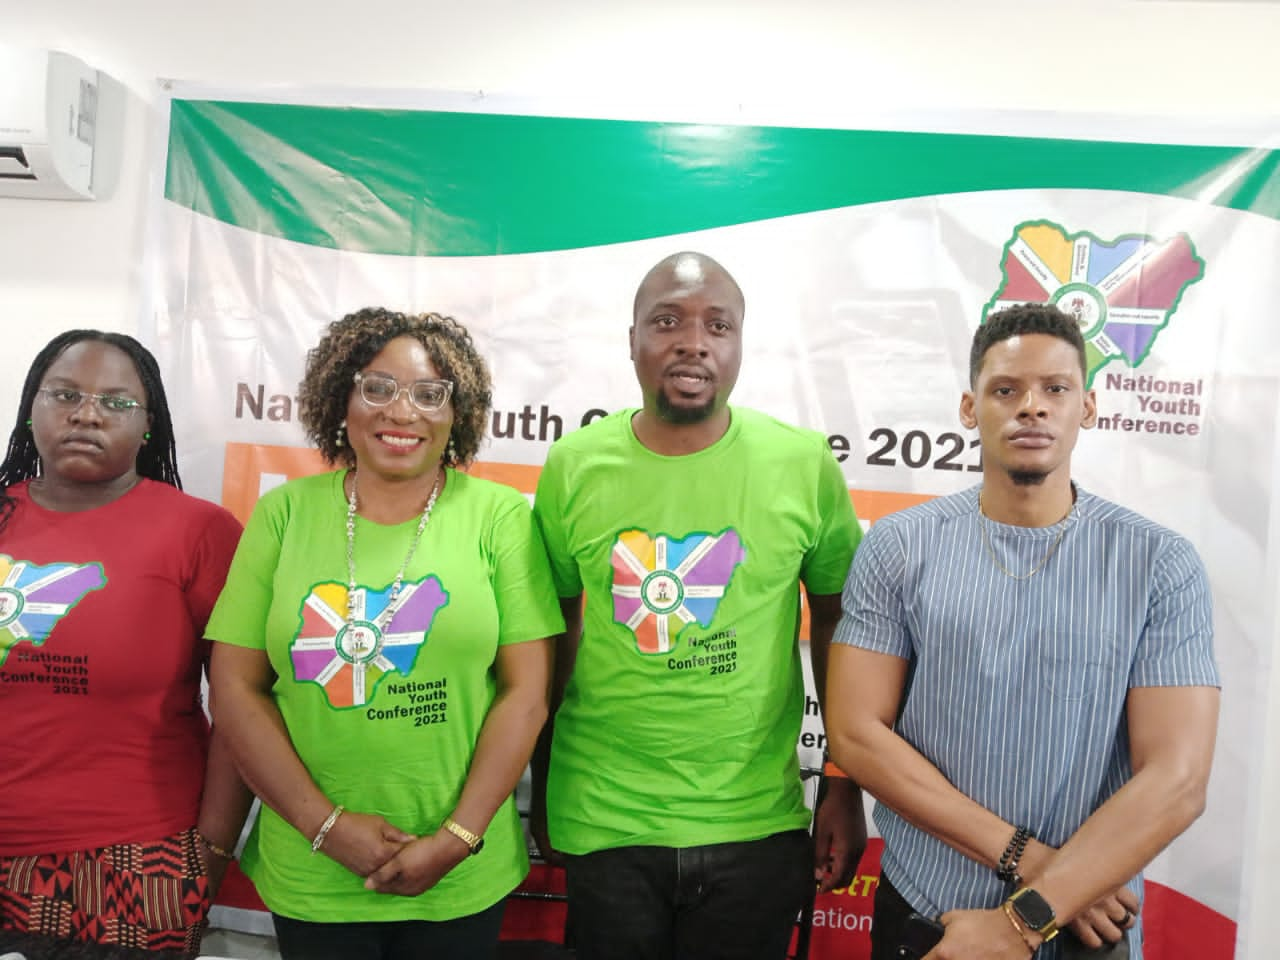 National Youth Conference Set to Chart New Course For Nigeria - Organisers